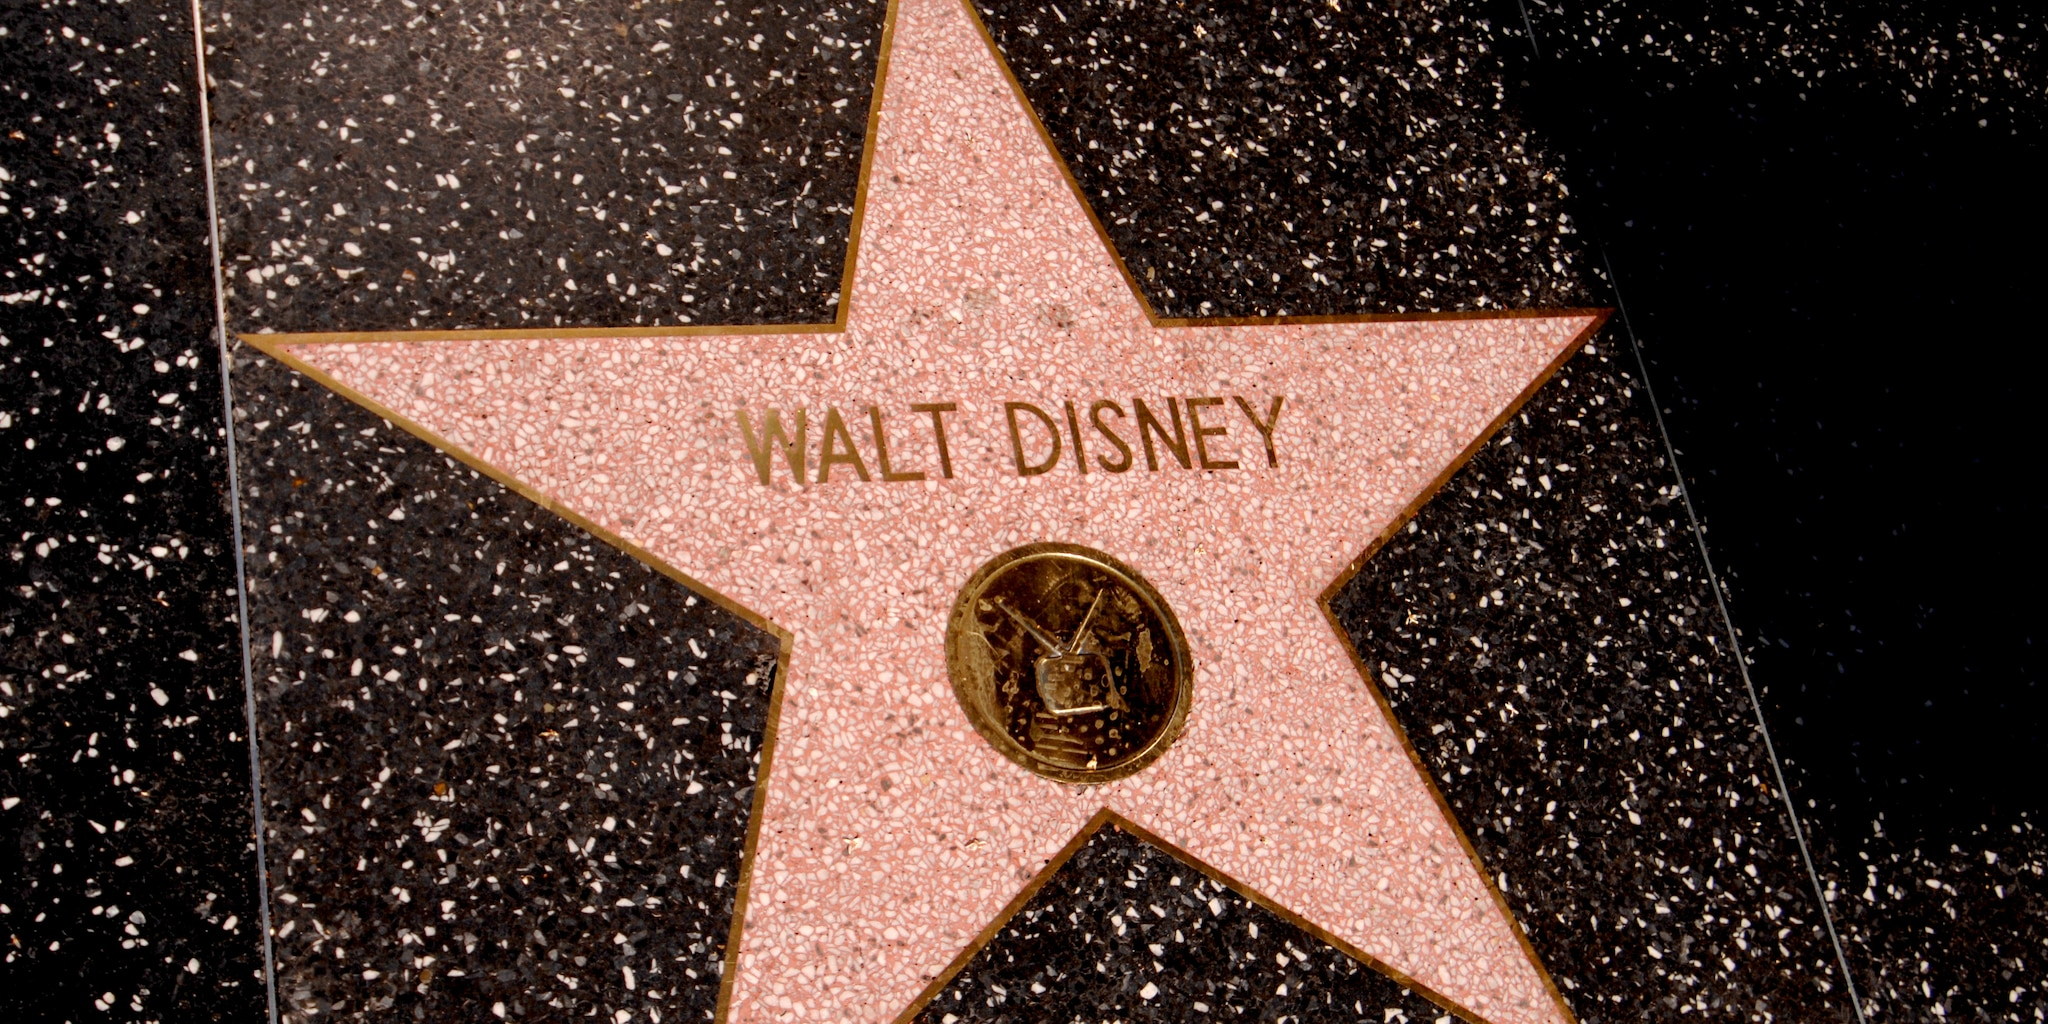 Visit the Walk of Fame on the Los Angeles vacation